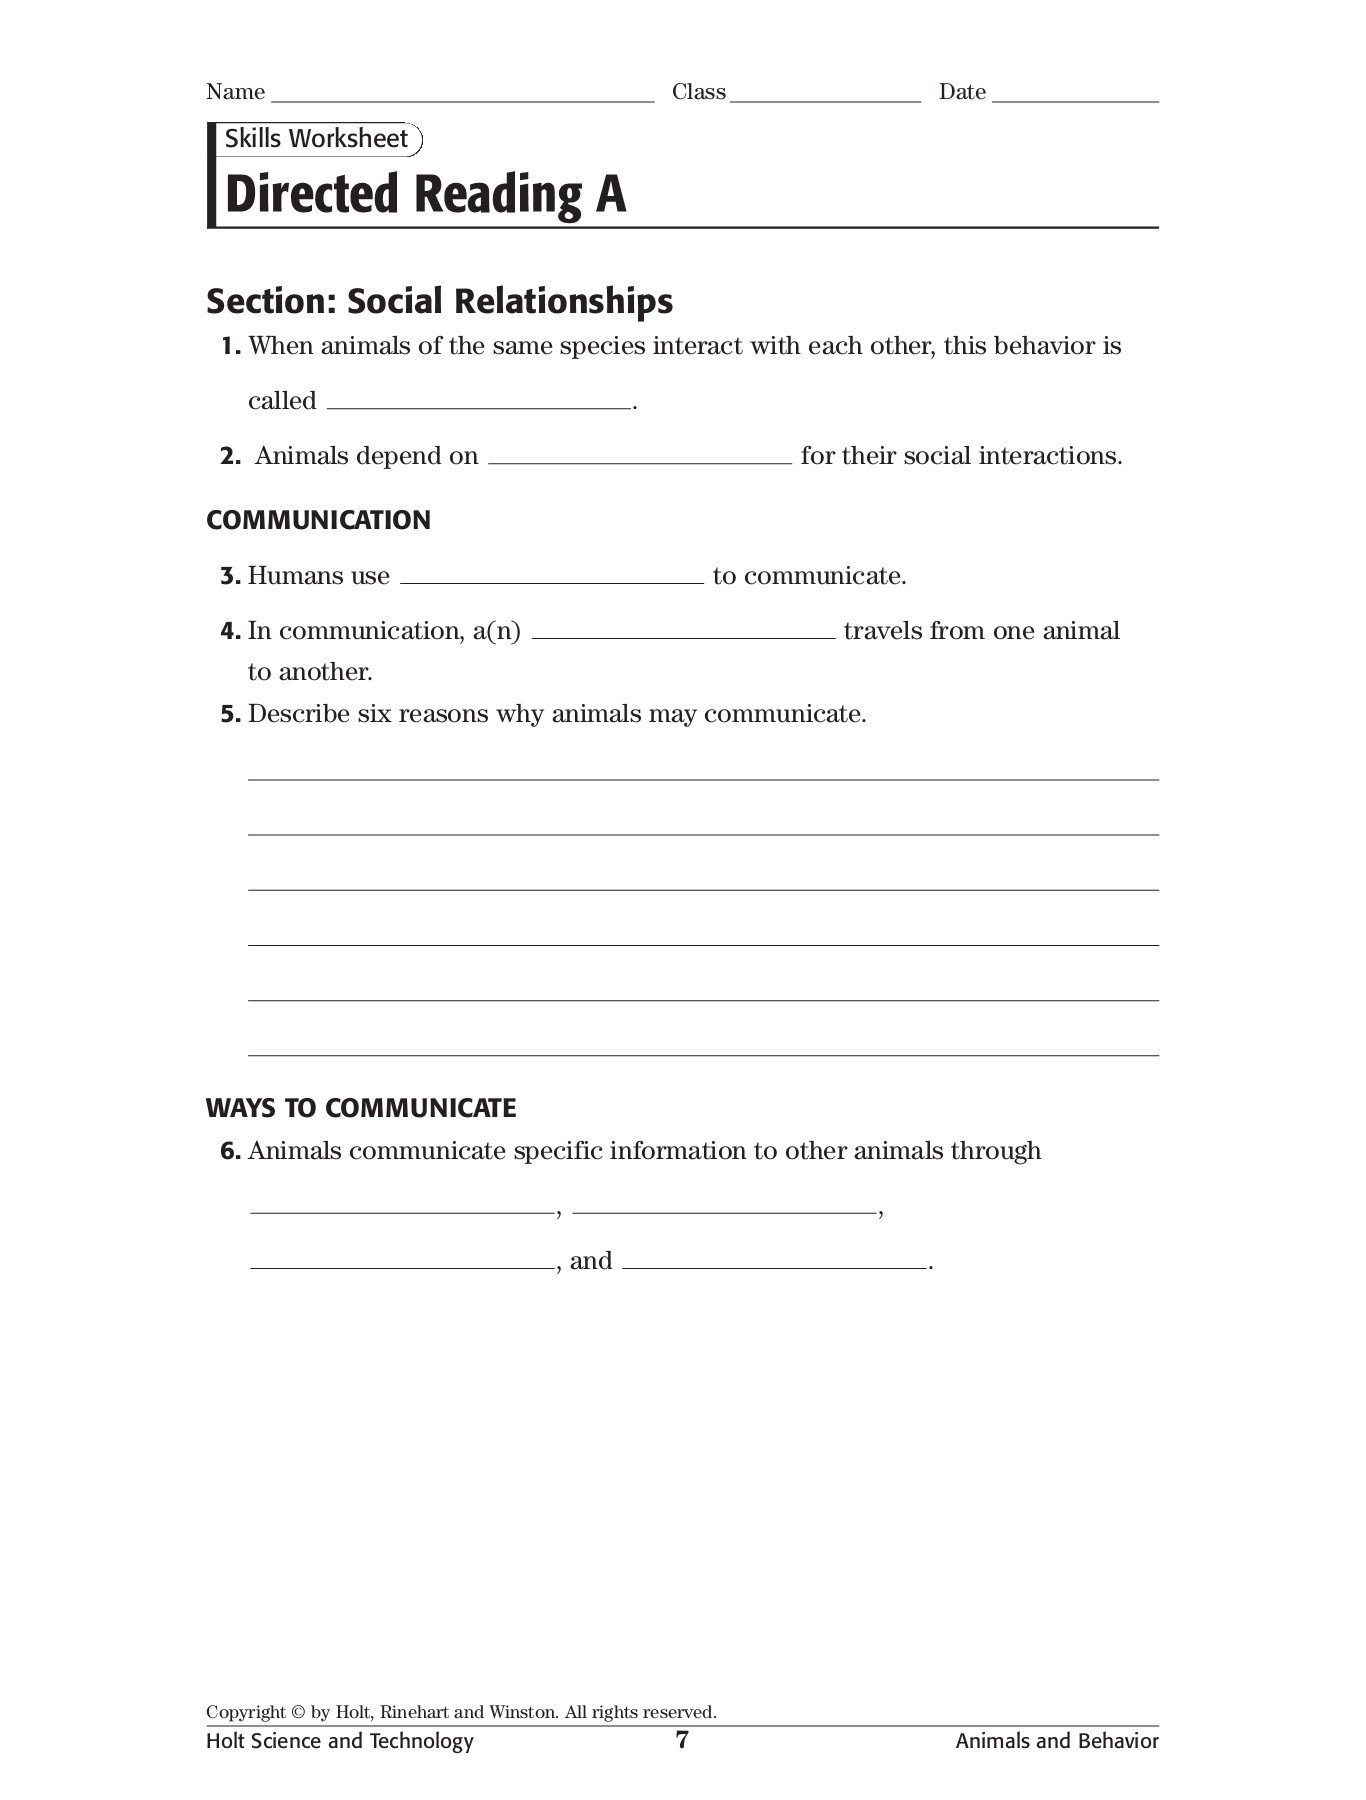 Animal Behavior Worksheet Answers Skills Worksheet Directed Reading A Pc Mac Pages 1 3